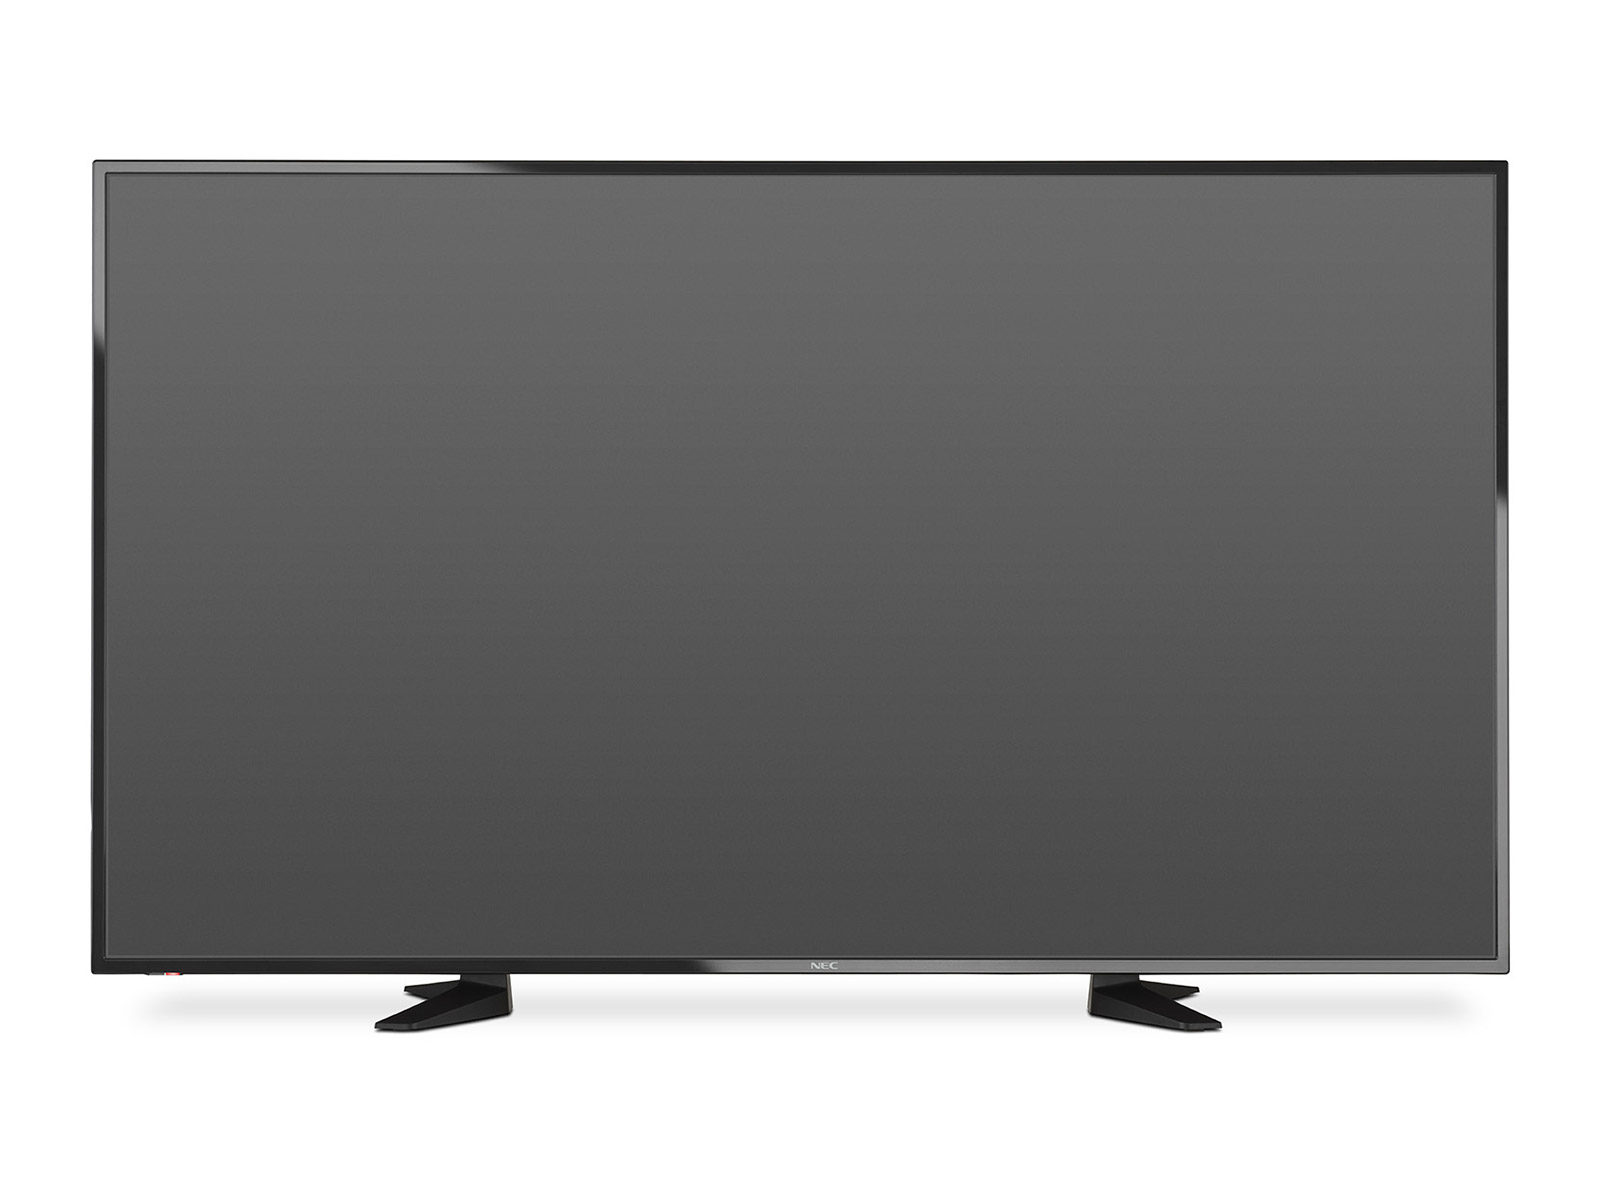 Monitor LED NEC E556 55 9ms Full HD Negru